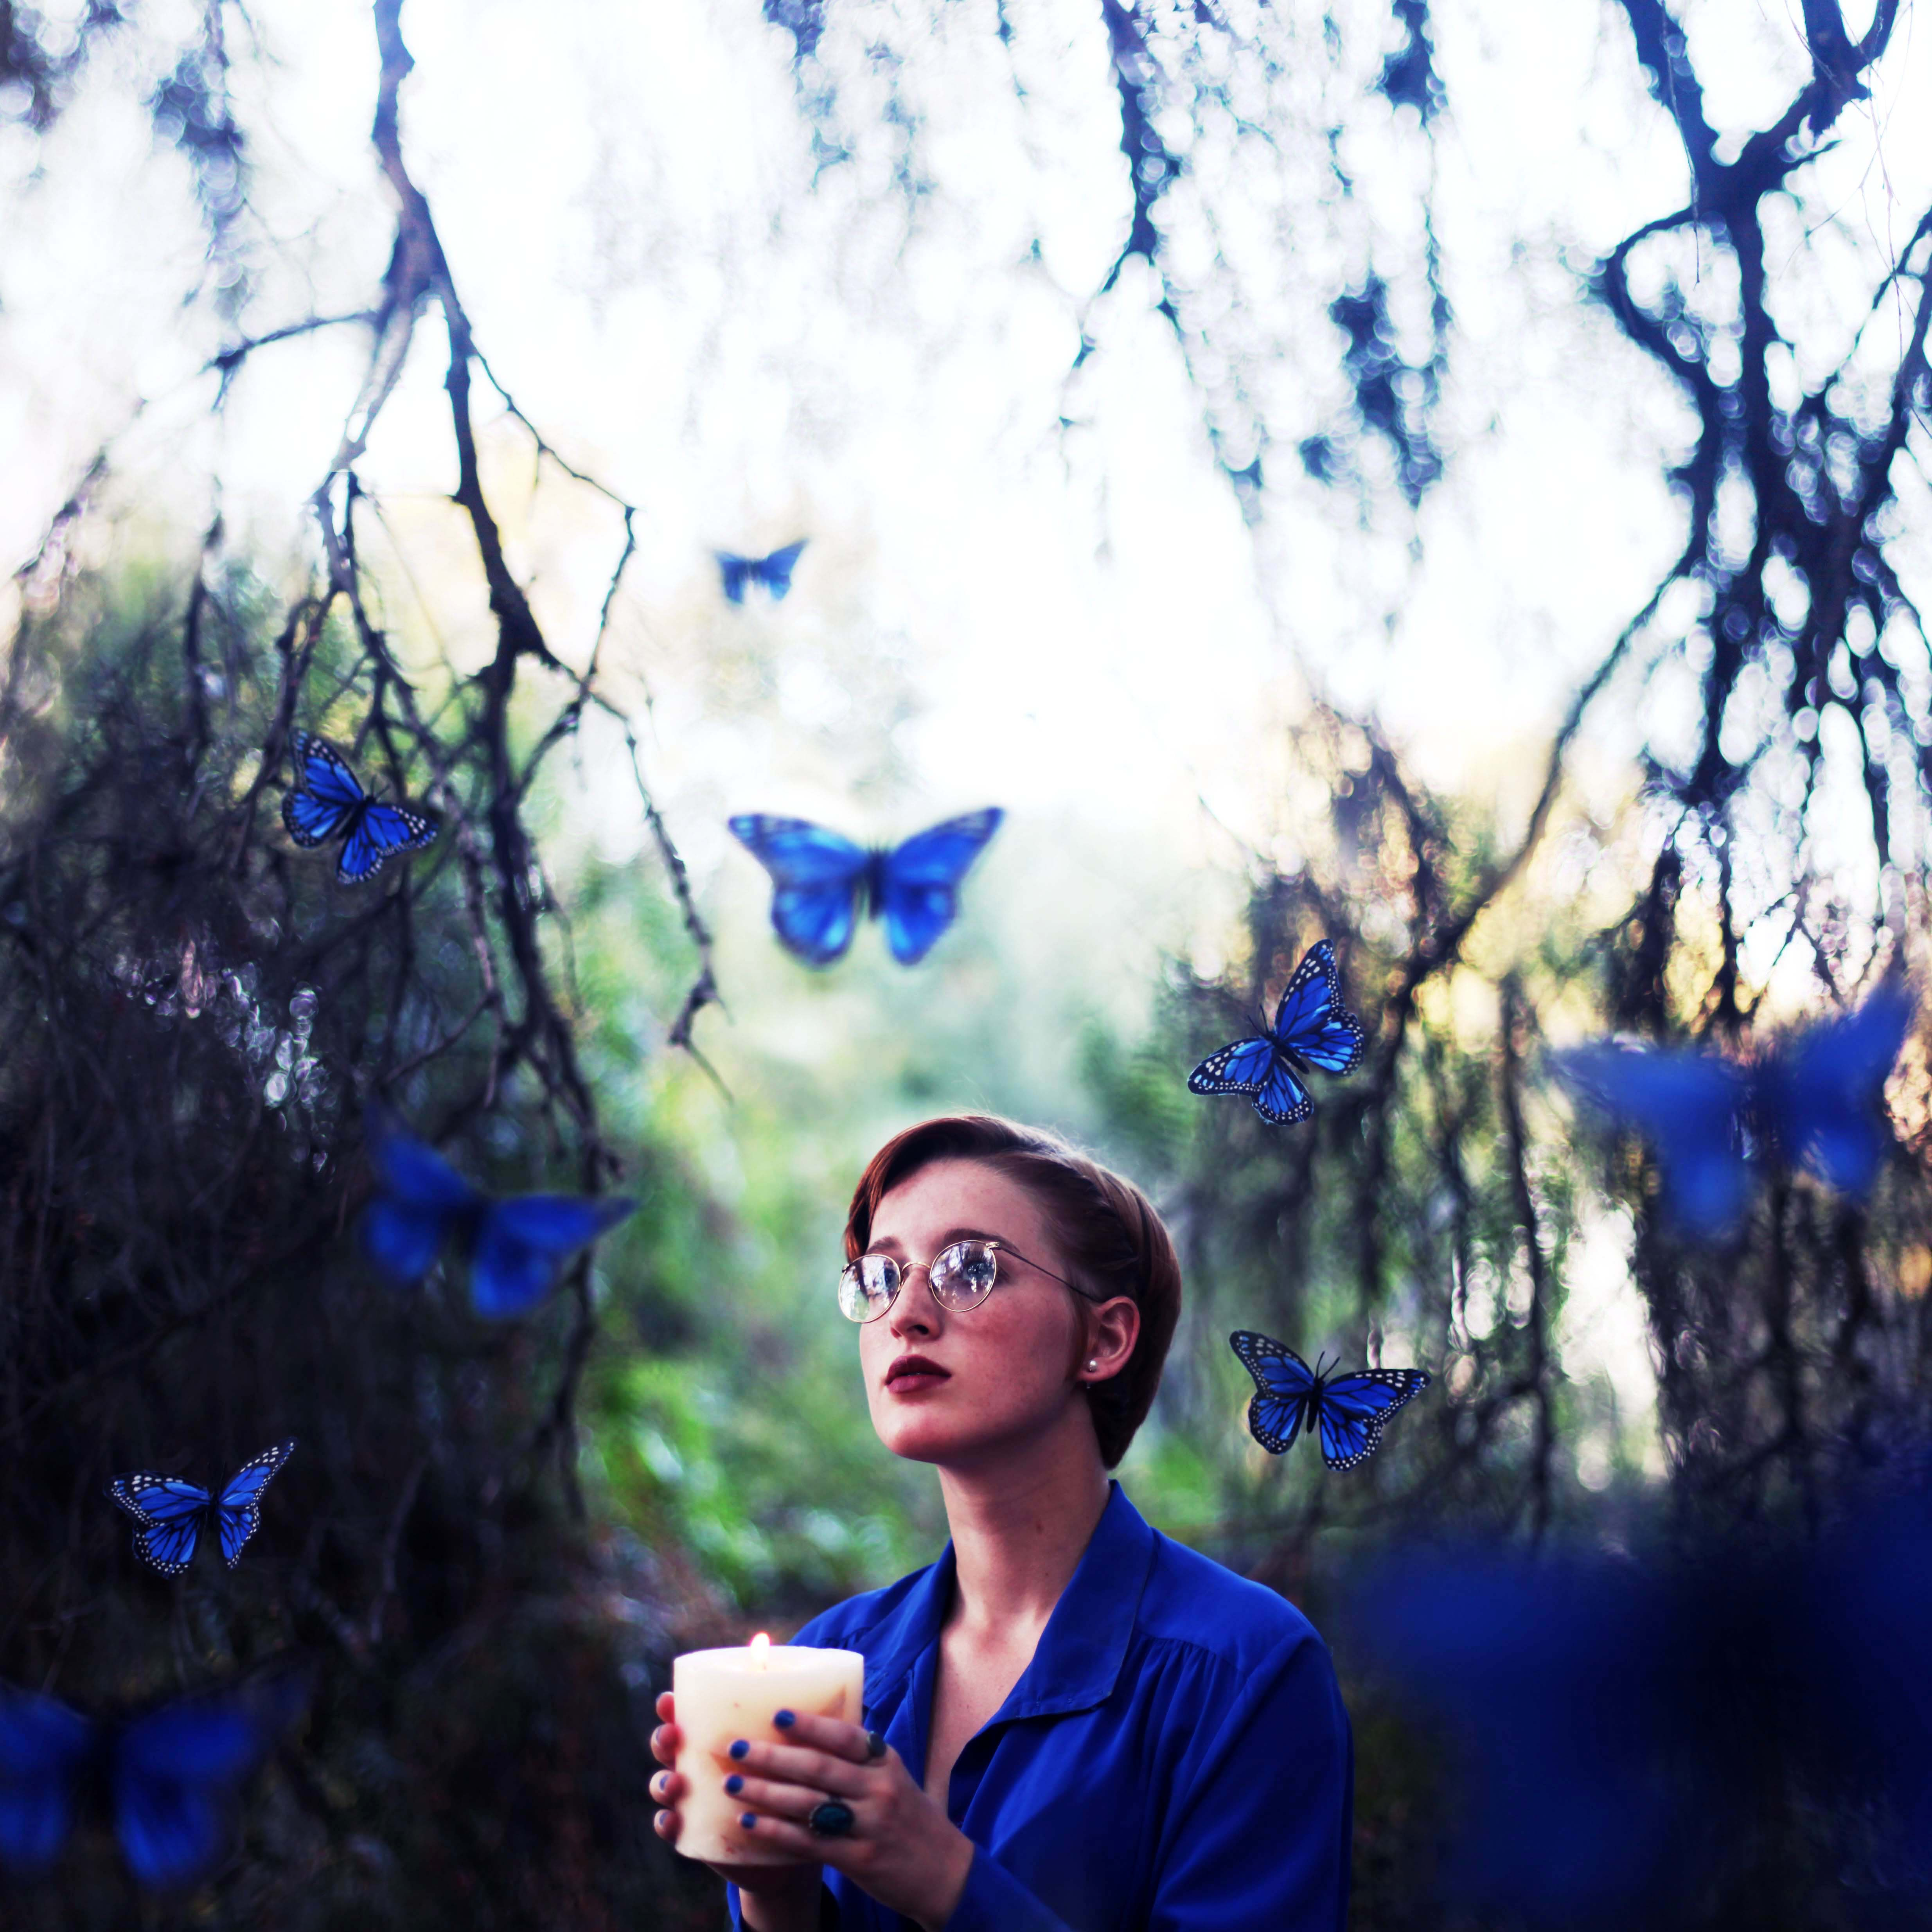 Ash Hershberger, The Butterfly Keeper's Daughter, 17. Juni 2012